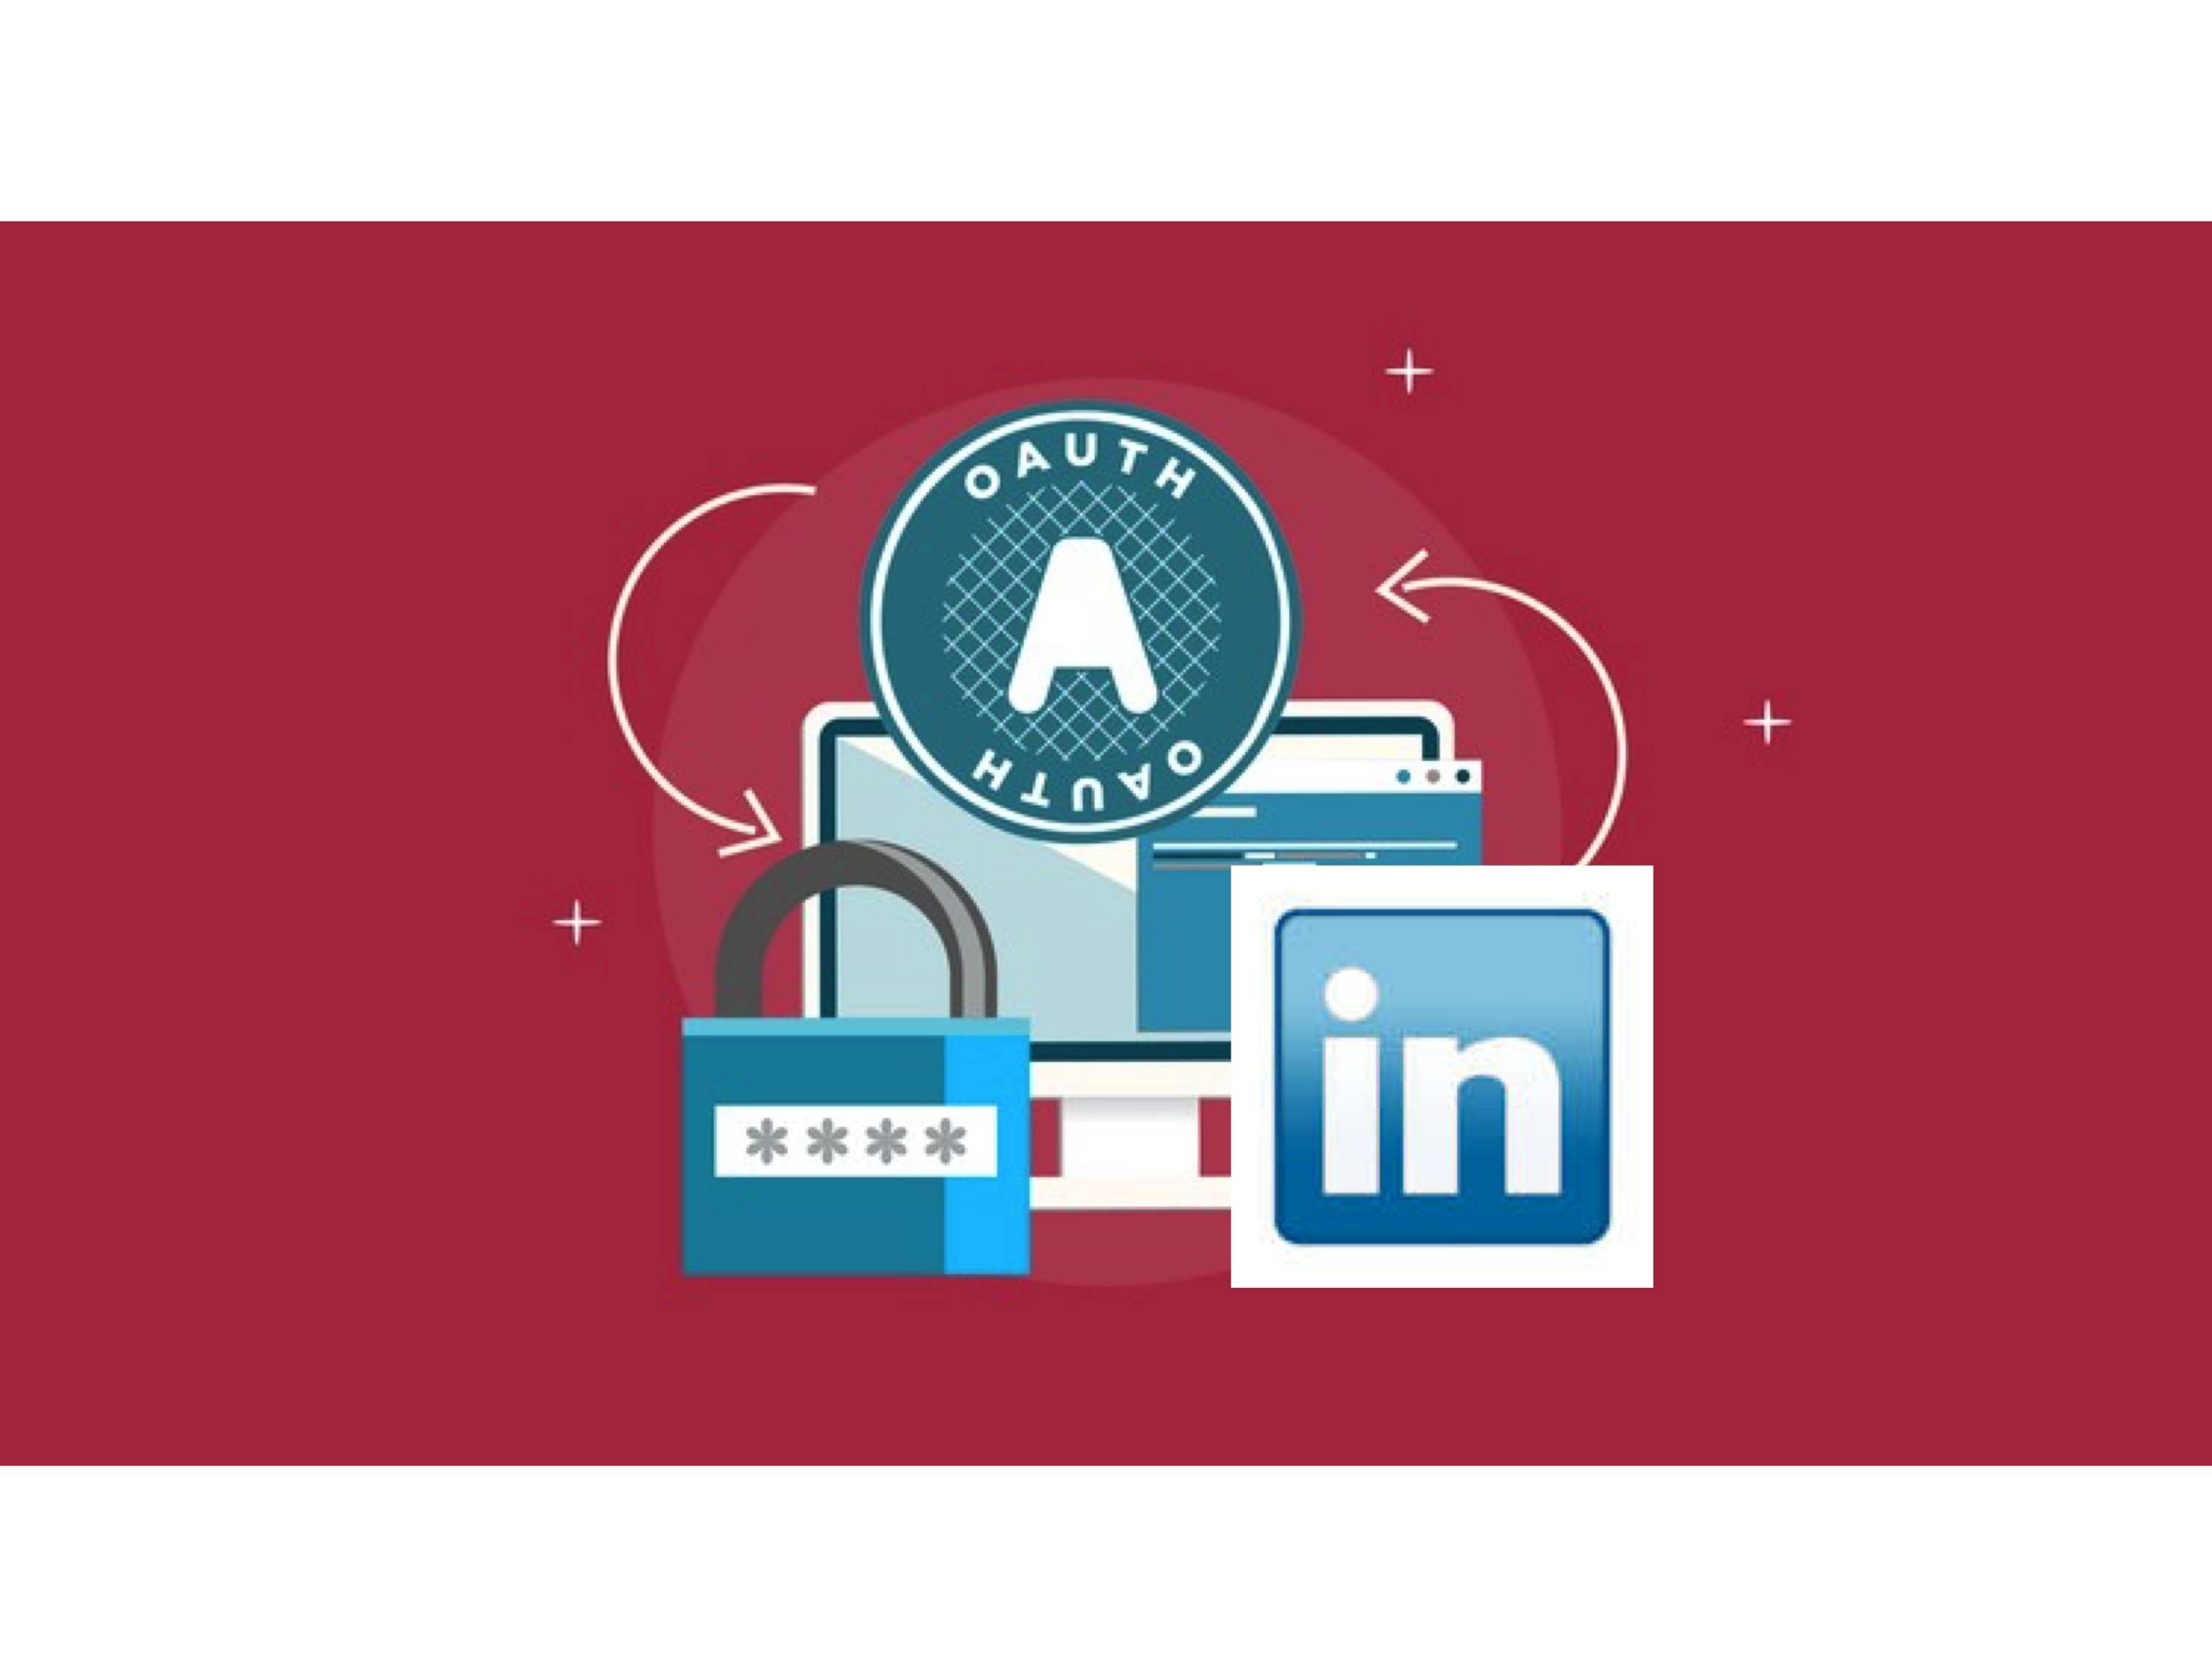 Learn OAuth for Accessing the LinkedIn API